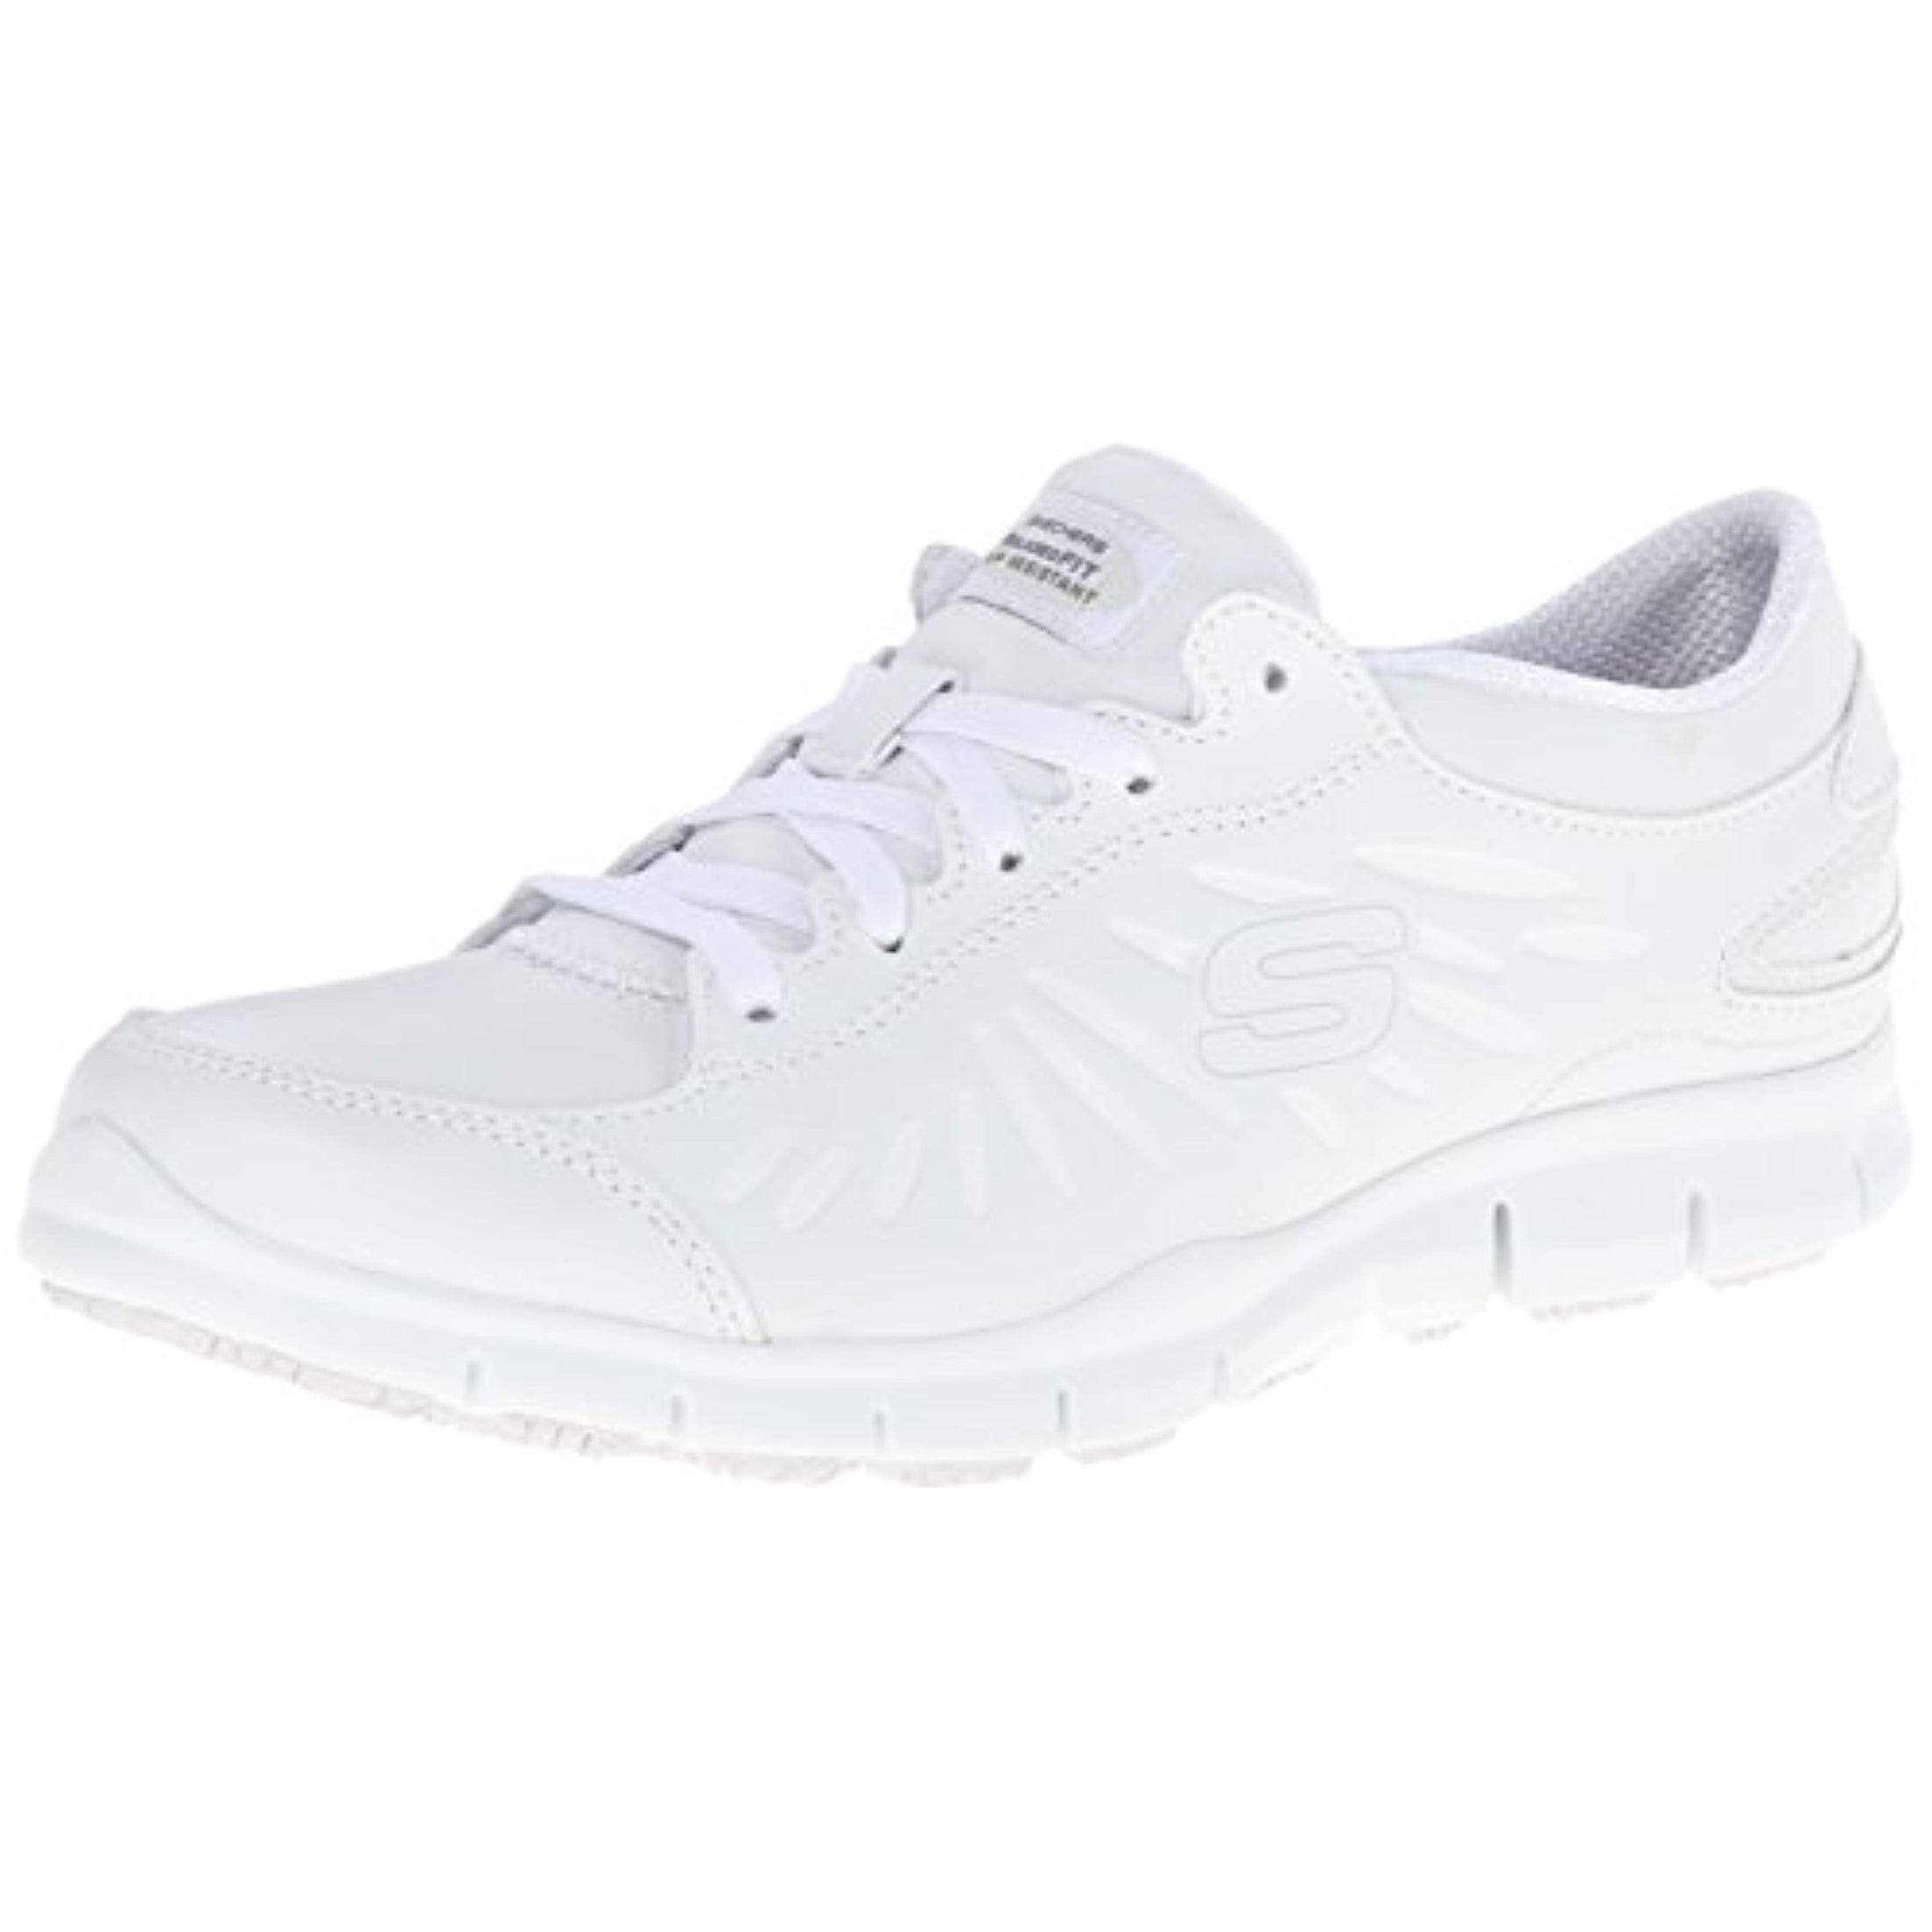 skechers womens white work shoes